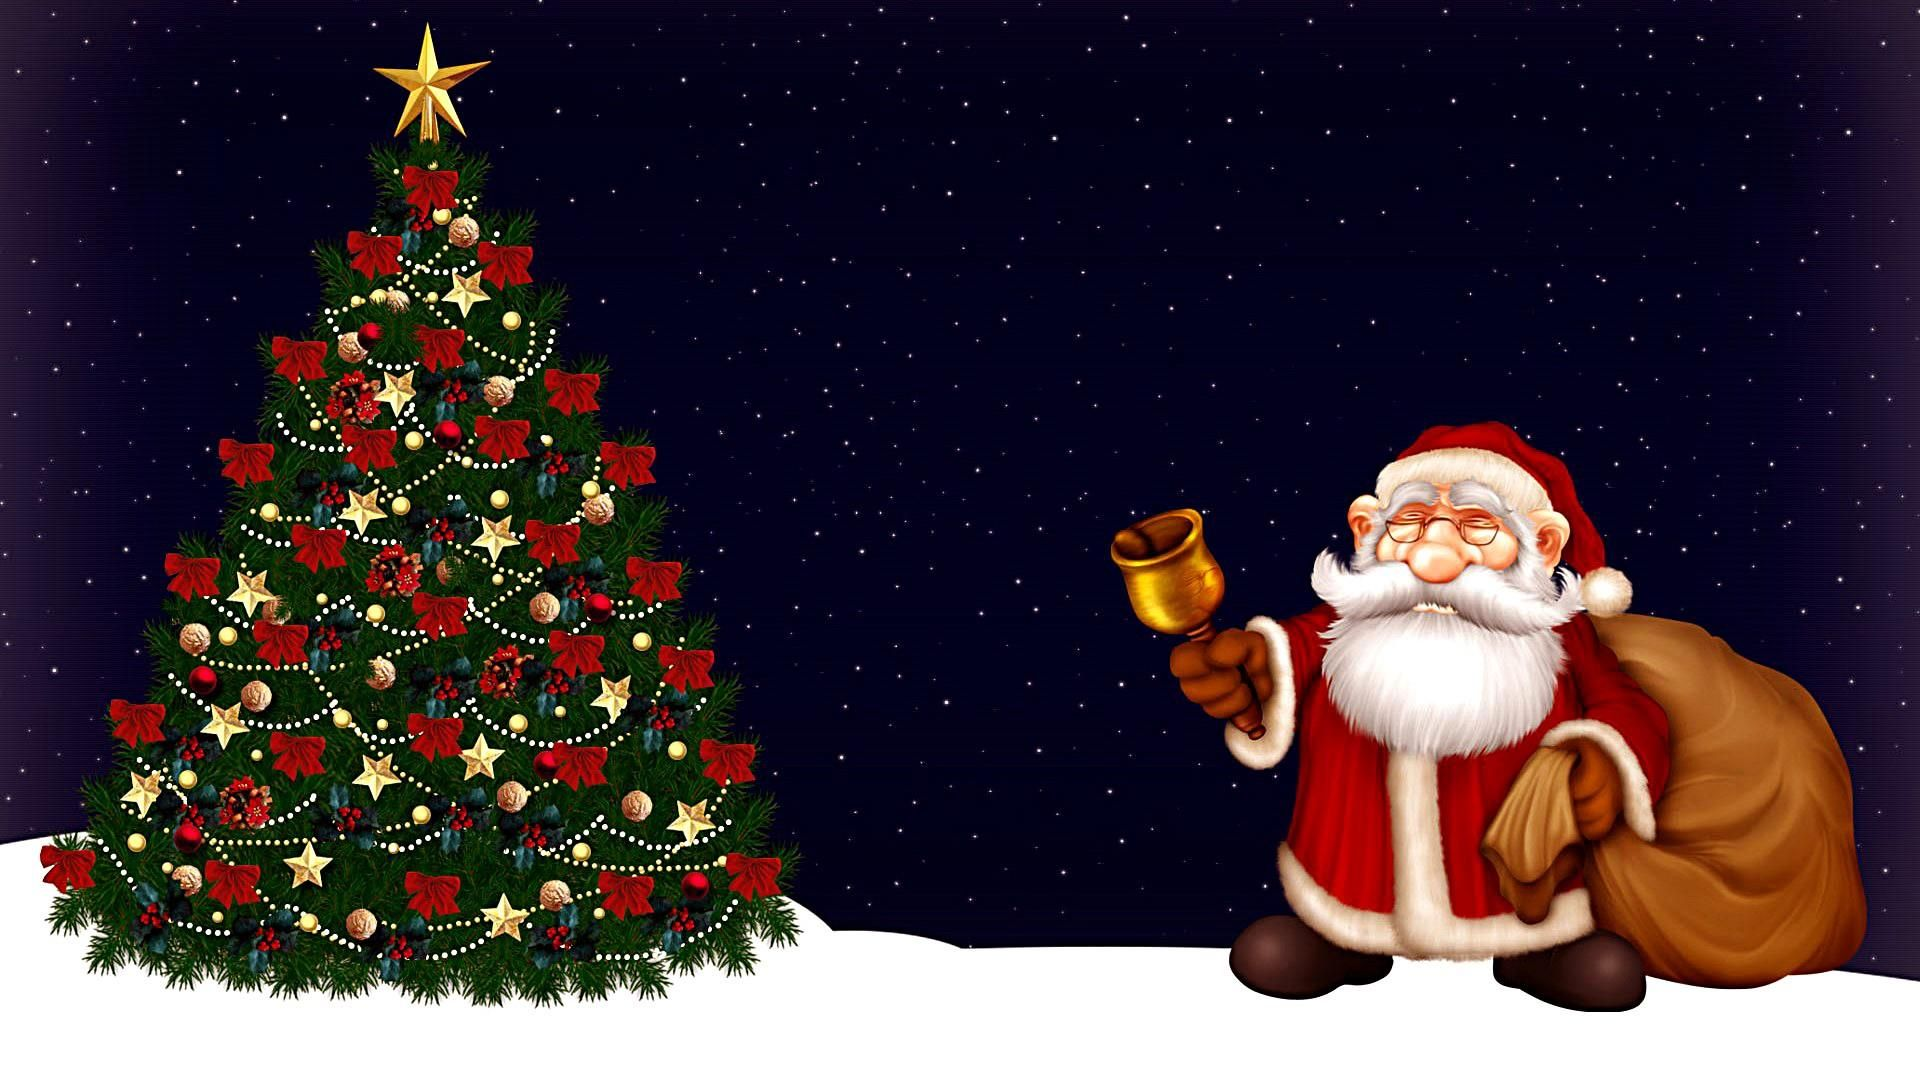 Beautiful Christmas Background 1920x1080 For Ios Christmas Wallpaper Hd Xmas Wallpaper Christmas Wallpaper Backgrounds